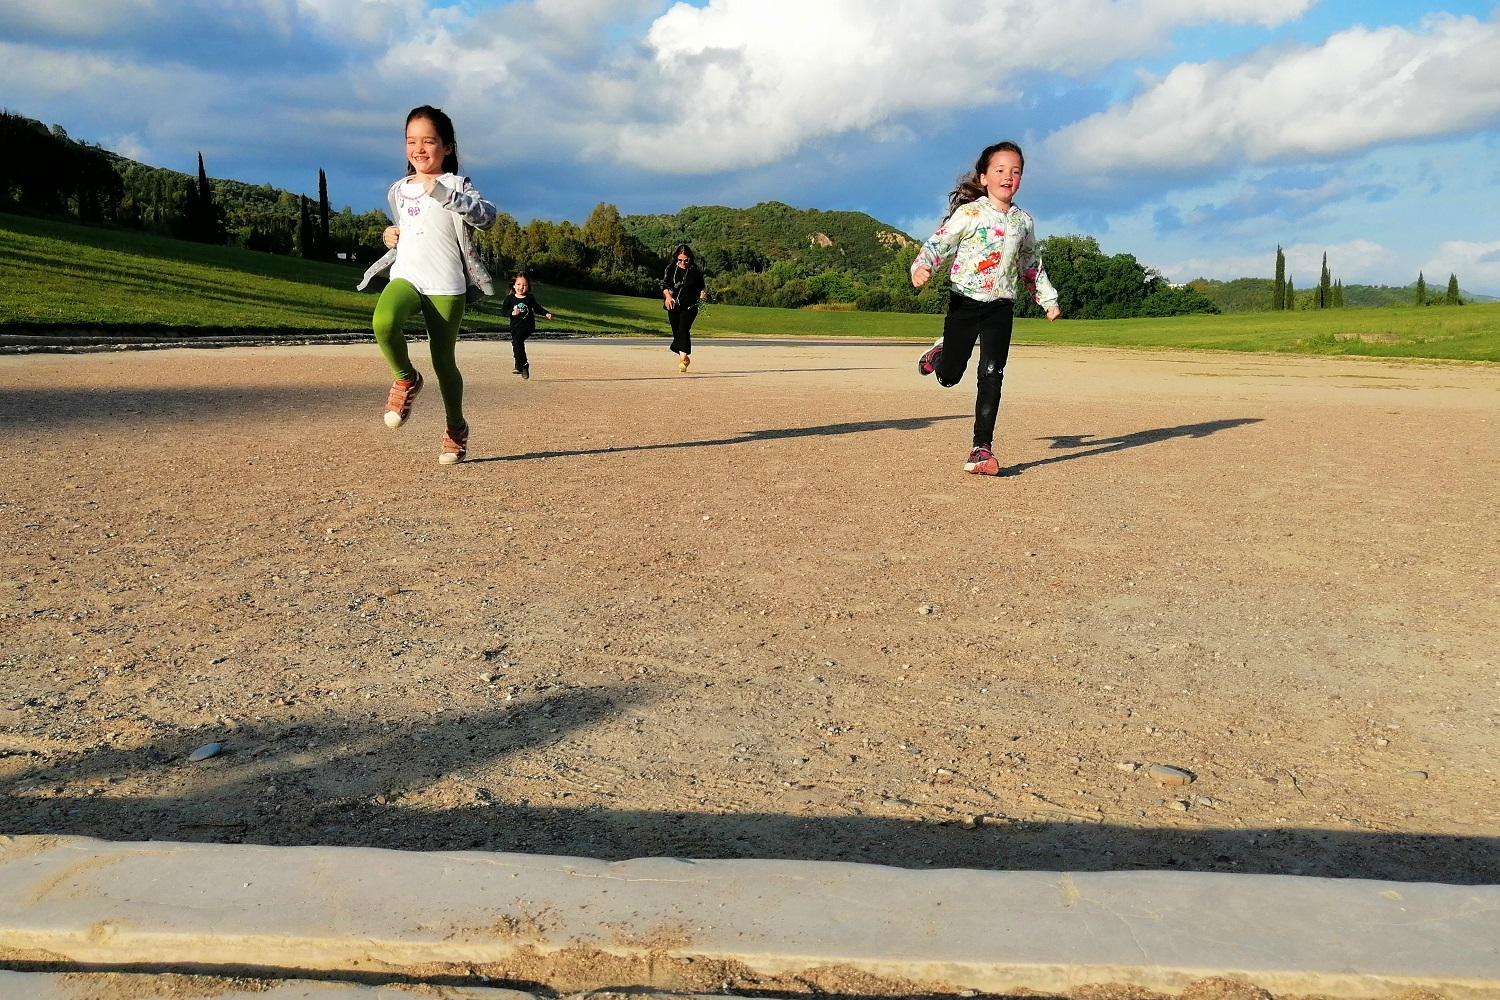 ancient olympia stadium kids run